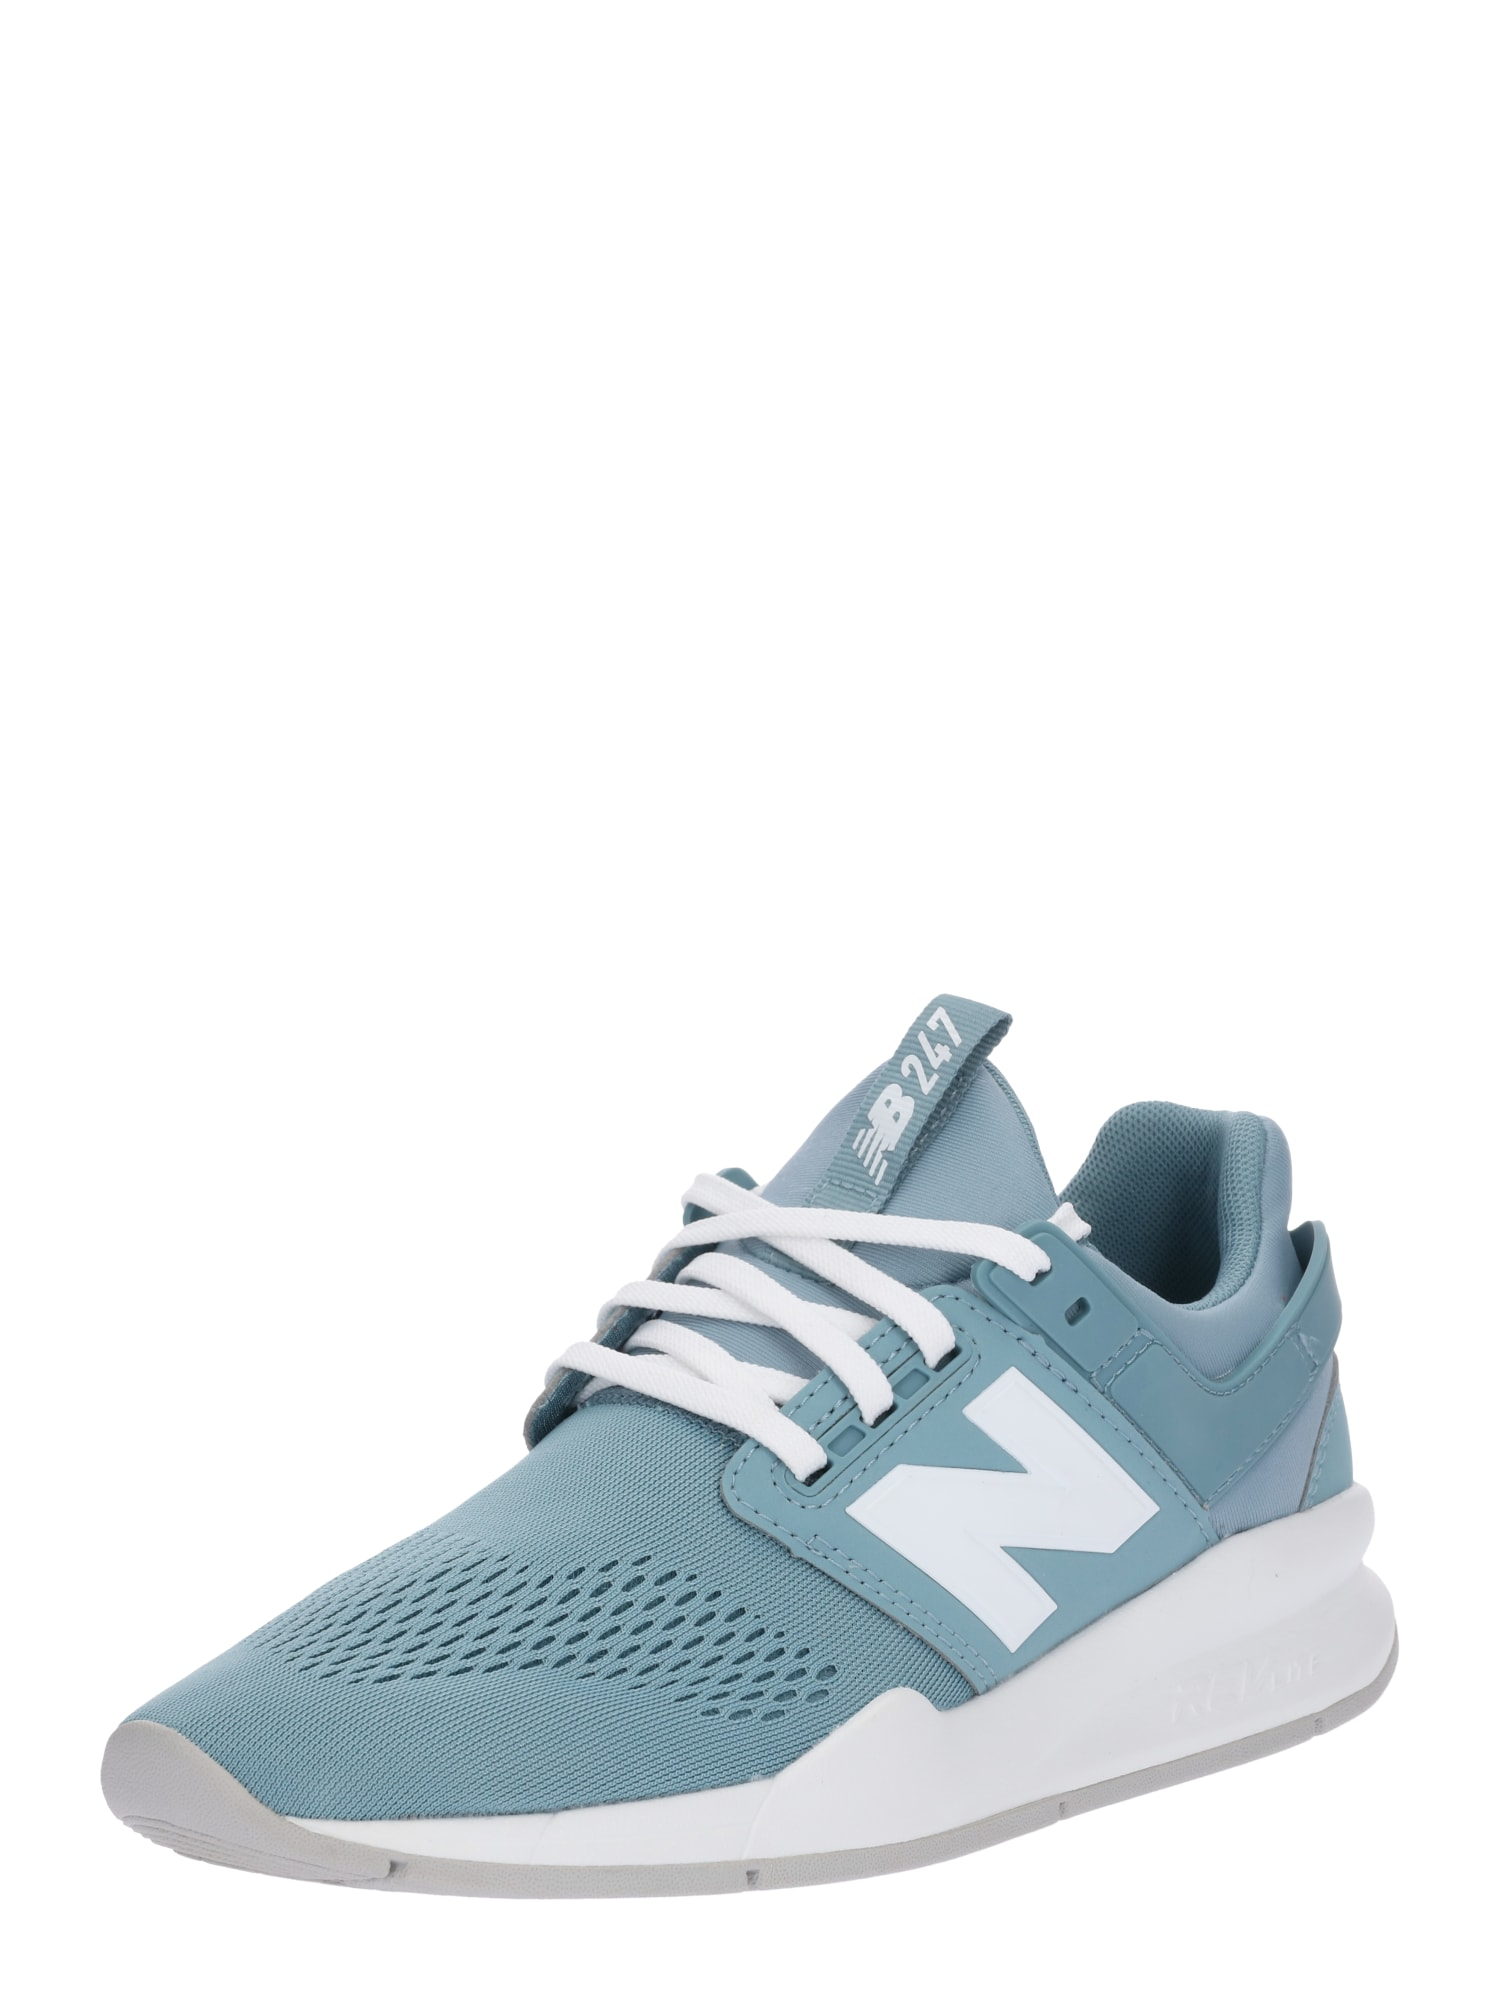 New Balance, Dames Sneakers laag 'WS247', hemelsblauw